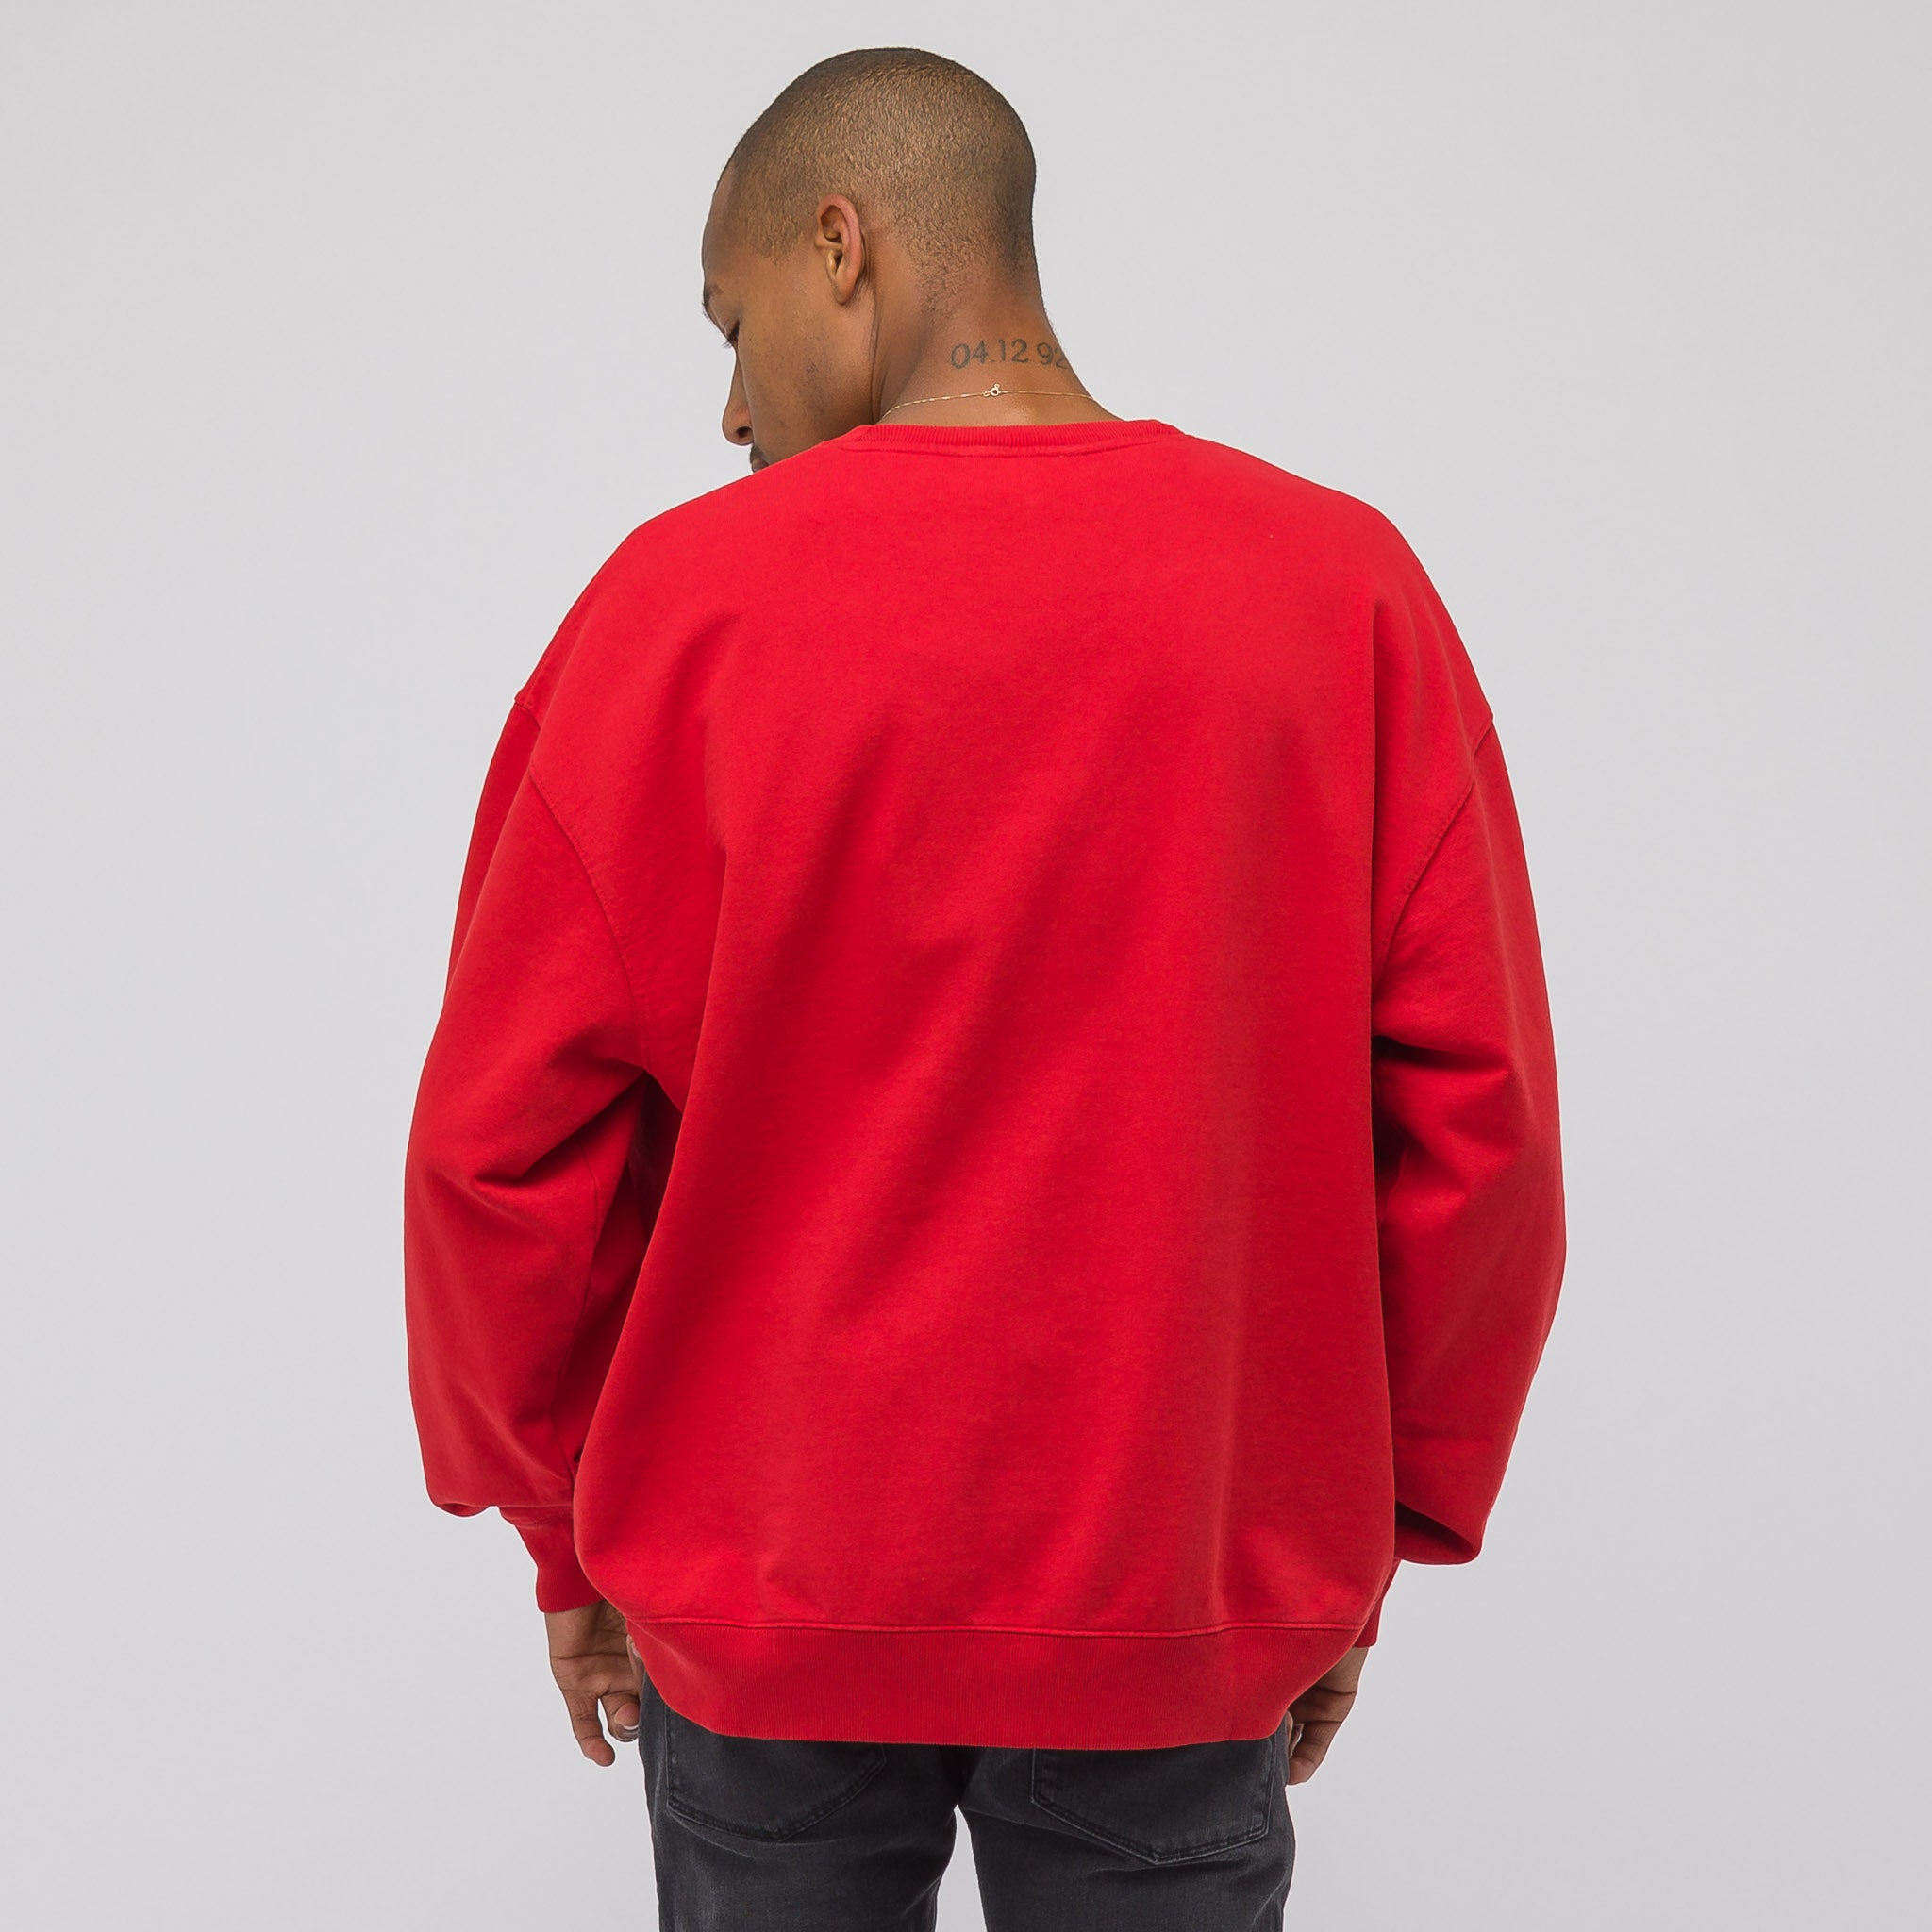 Garment Dyed Sweatshirt in Tomato Red